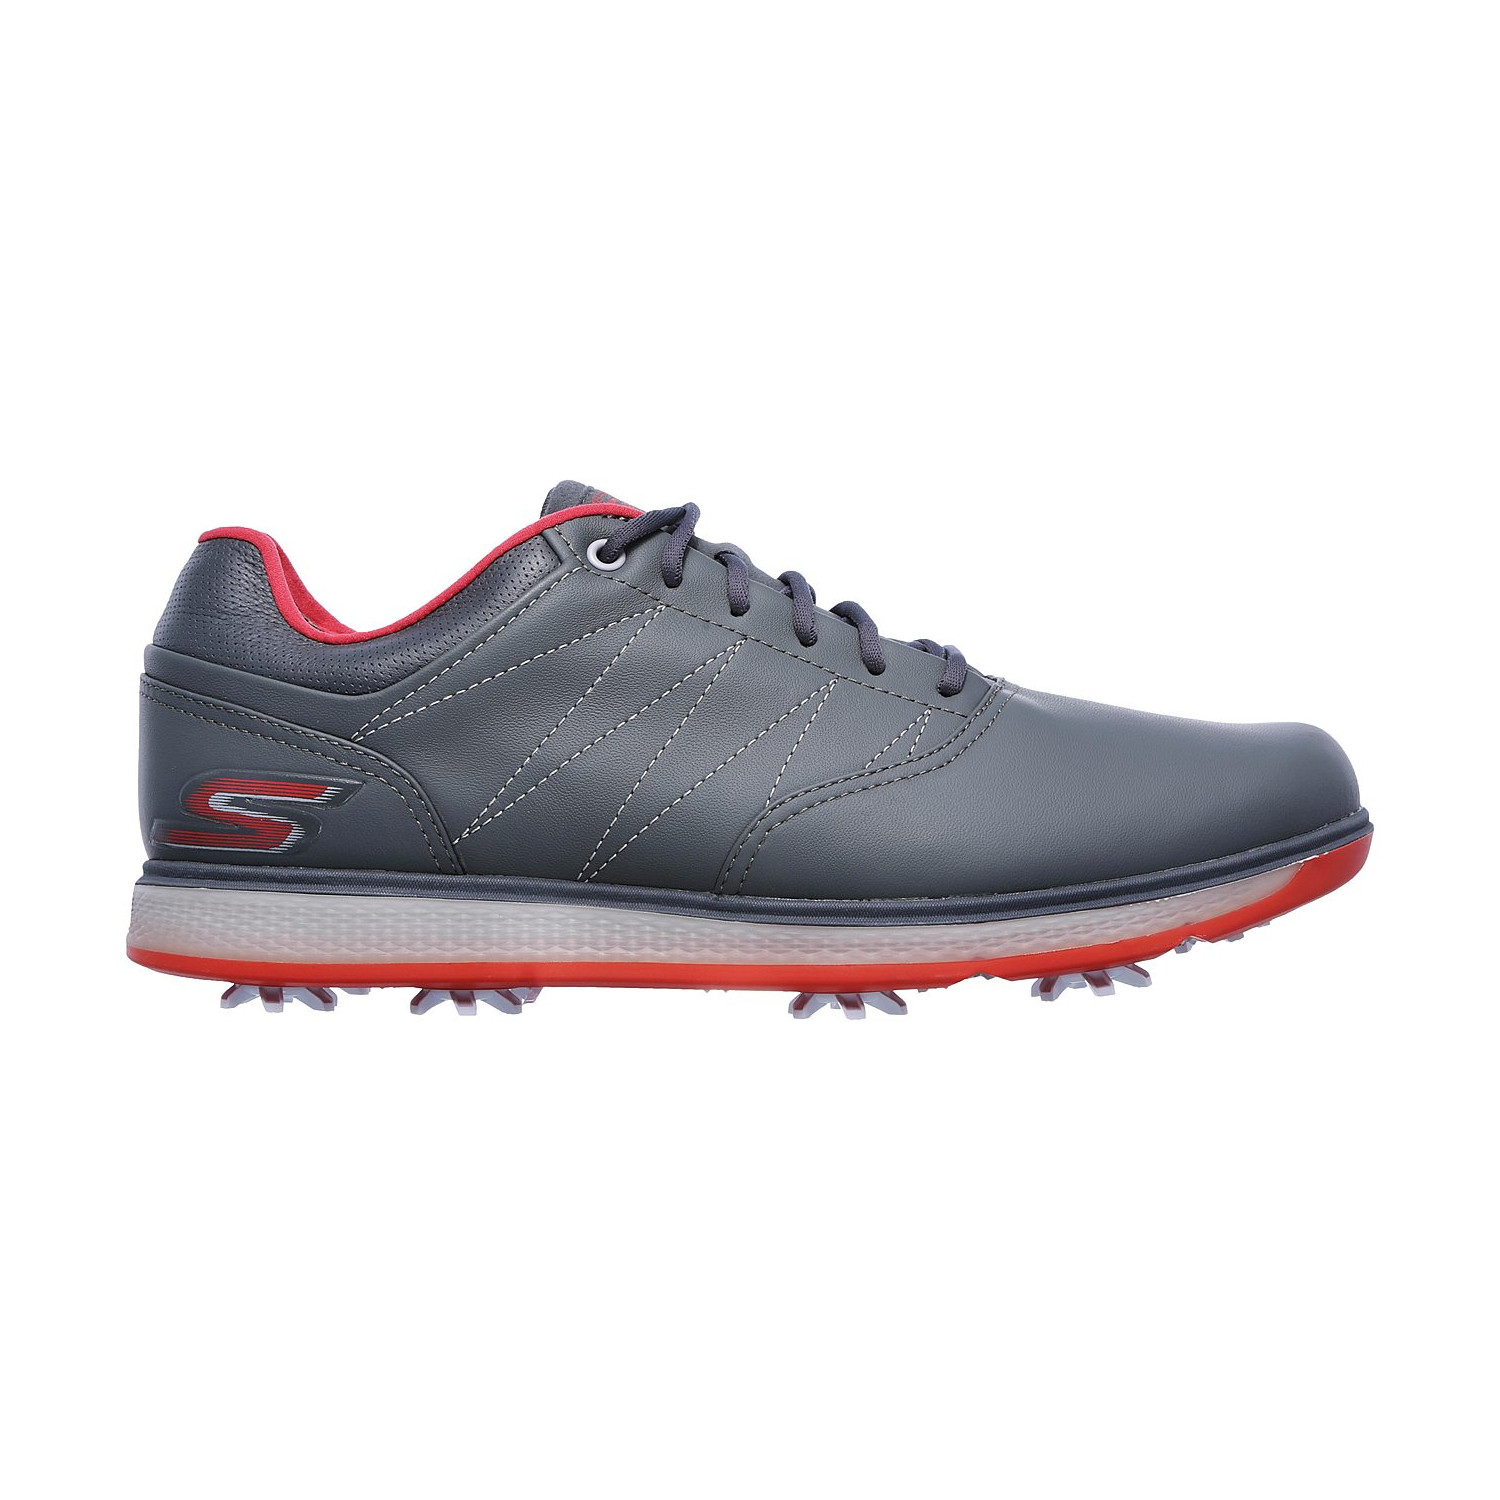 96f9b8d8821d Skechers GoGolf Pro v.3 shoes 2018 Grey - O Dwyers Golf Store